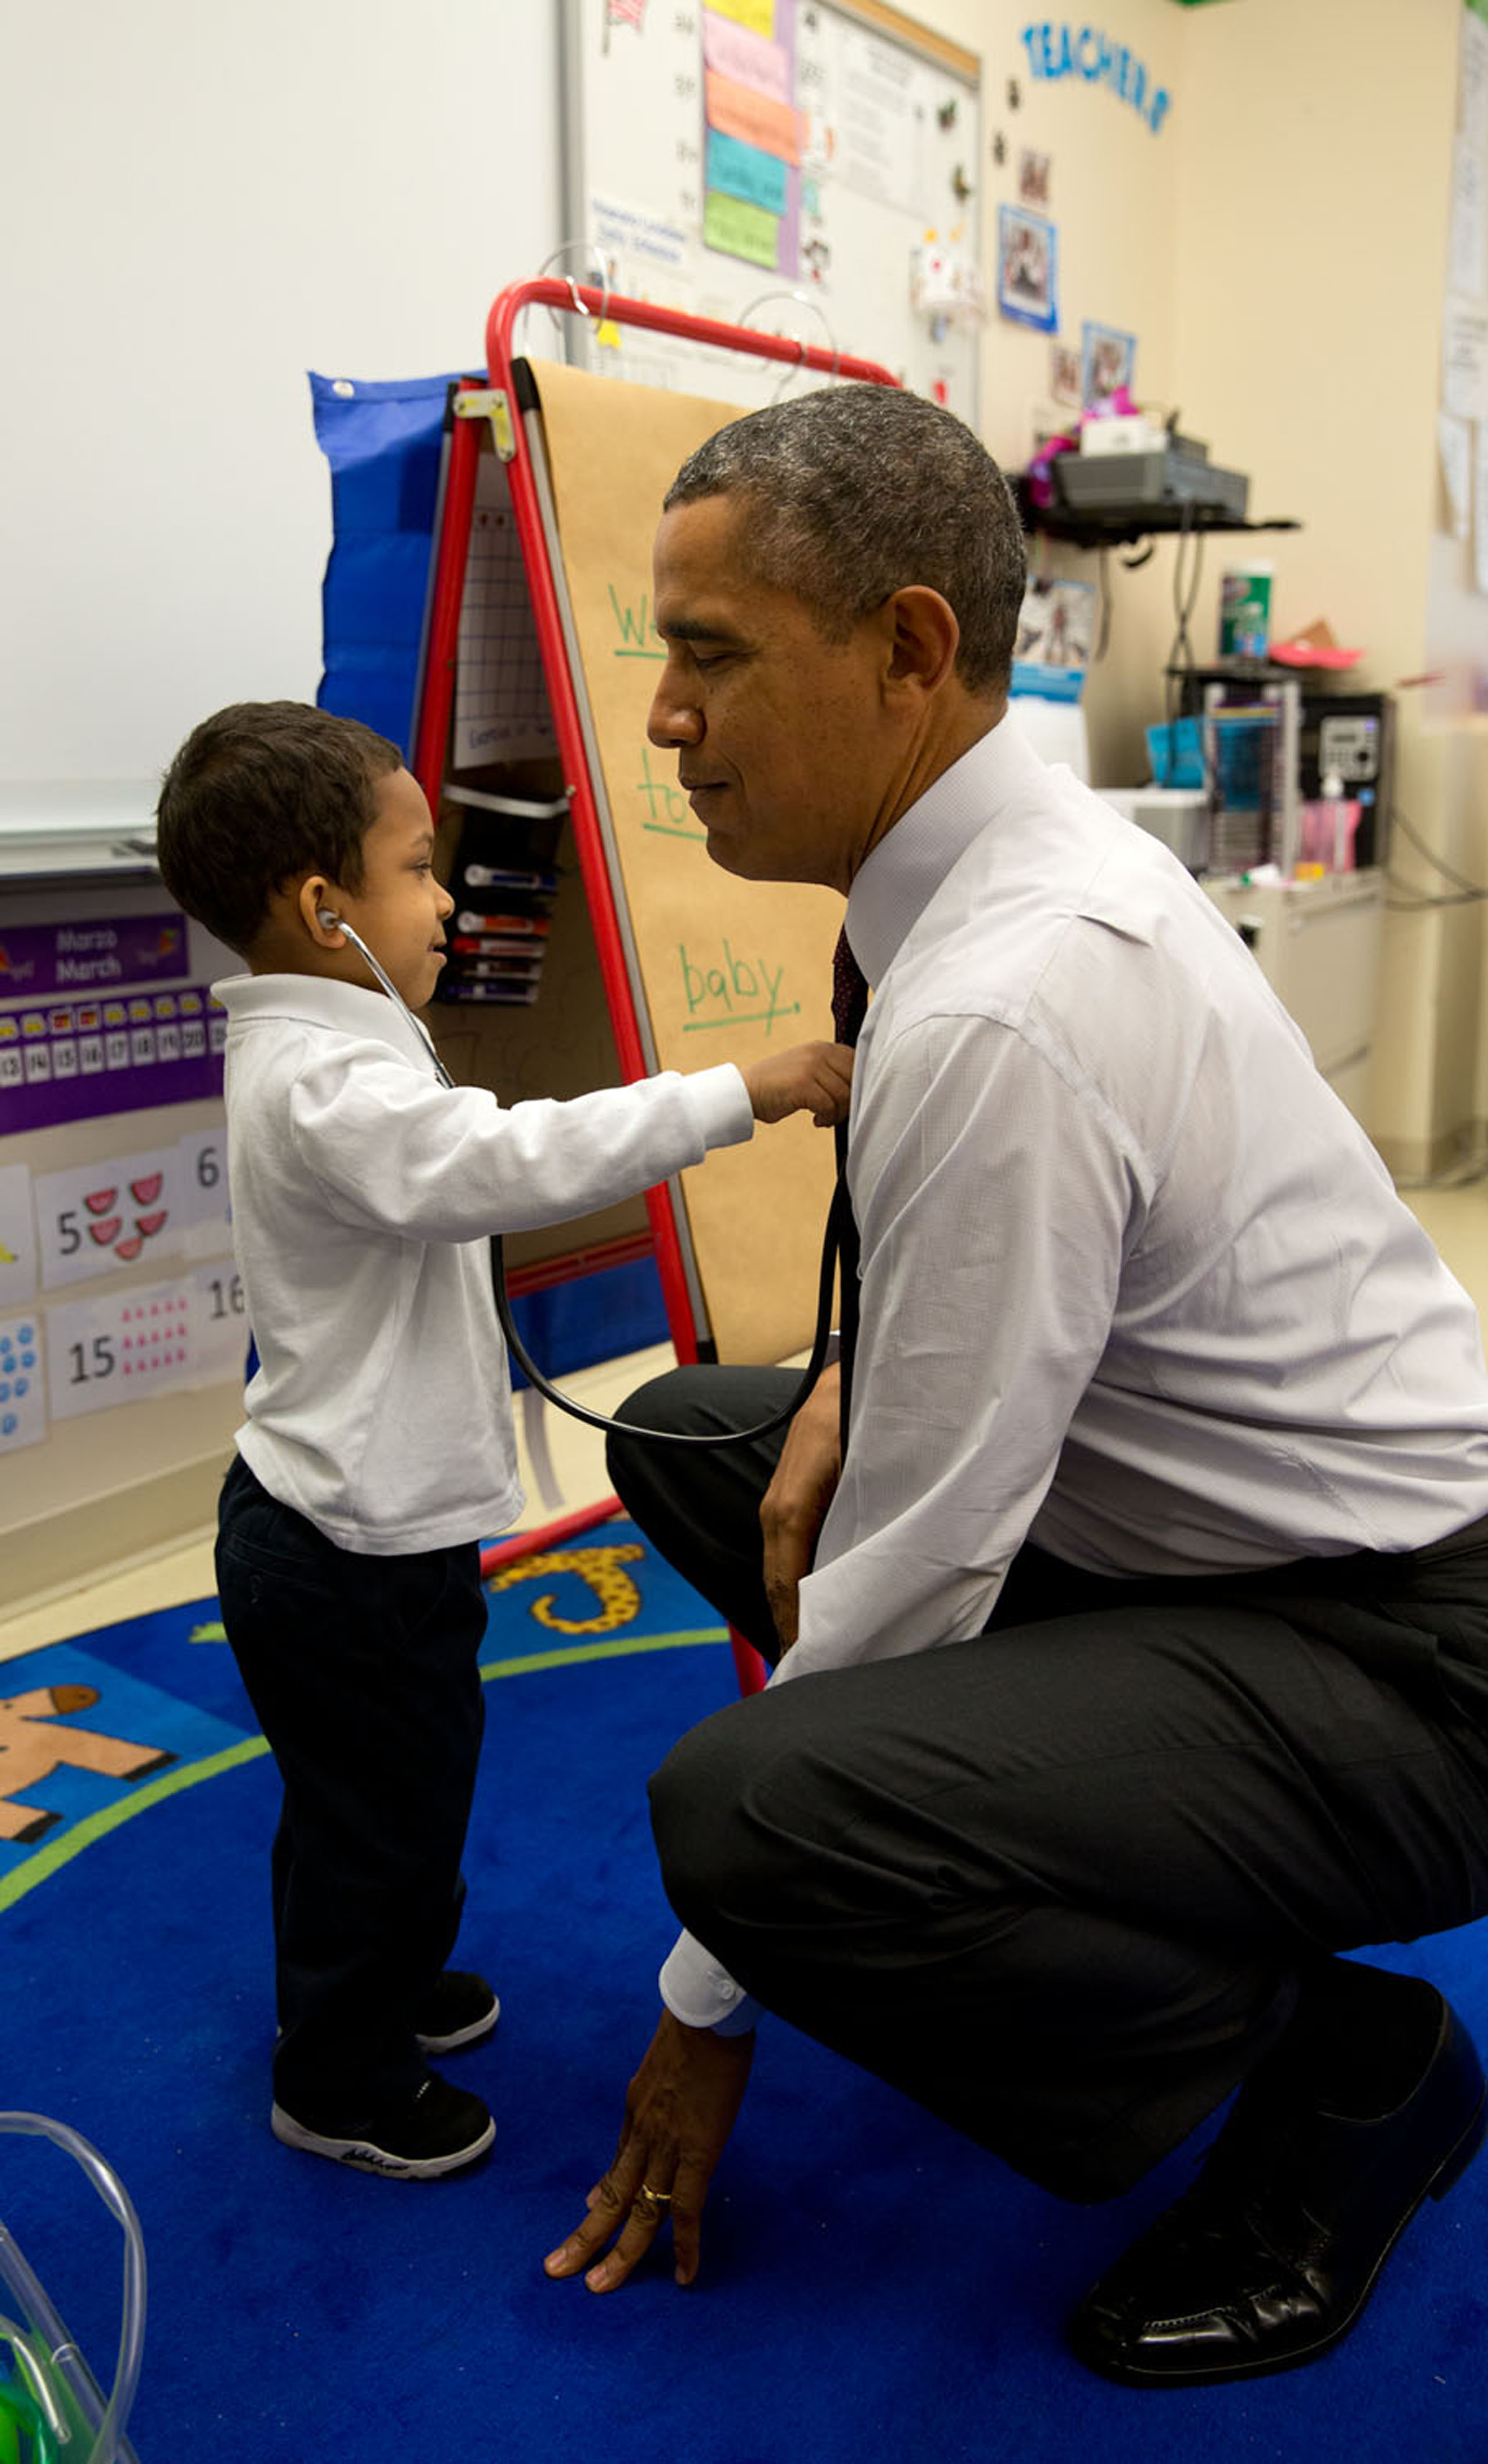 Obama asks a student at Powell Elementary School to check his heartbeat with a stethoscope in Washington, D.C., on March 4, 2014.